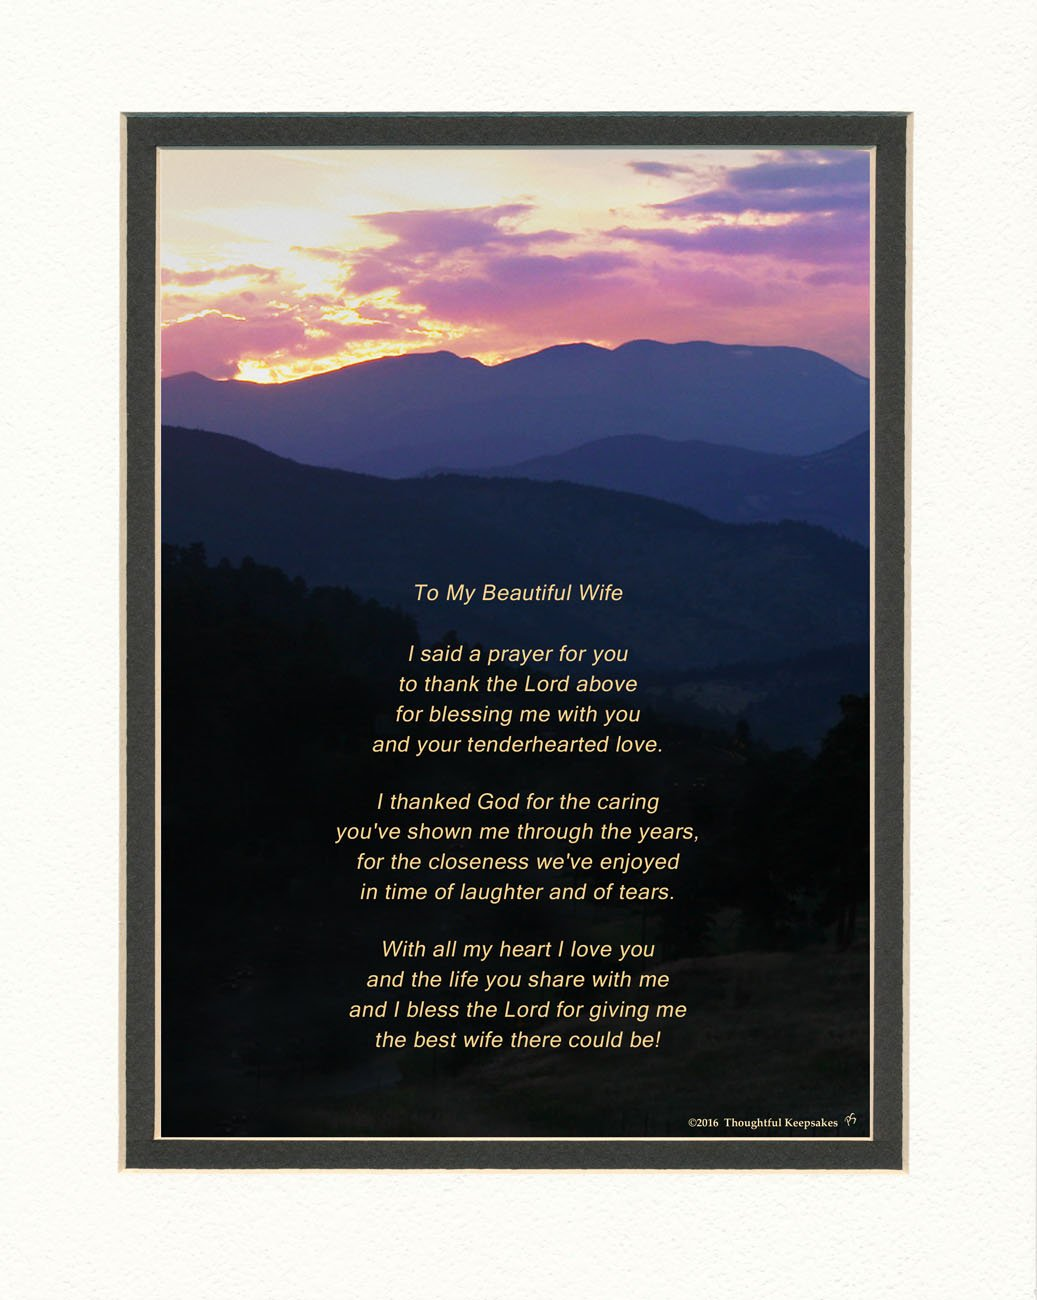 Wife Gift with Thank You Prayer for Best Wife Poem. Mts Sunset Photo, 8x10 Double Matted. Special Wife Gift for Anniversary, Birthday, Christmas